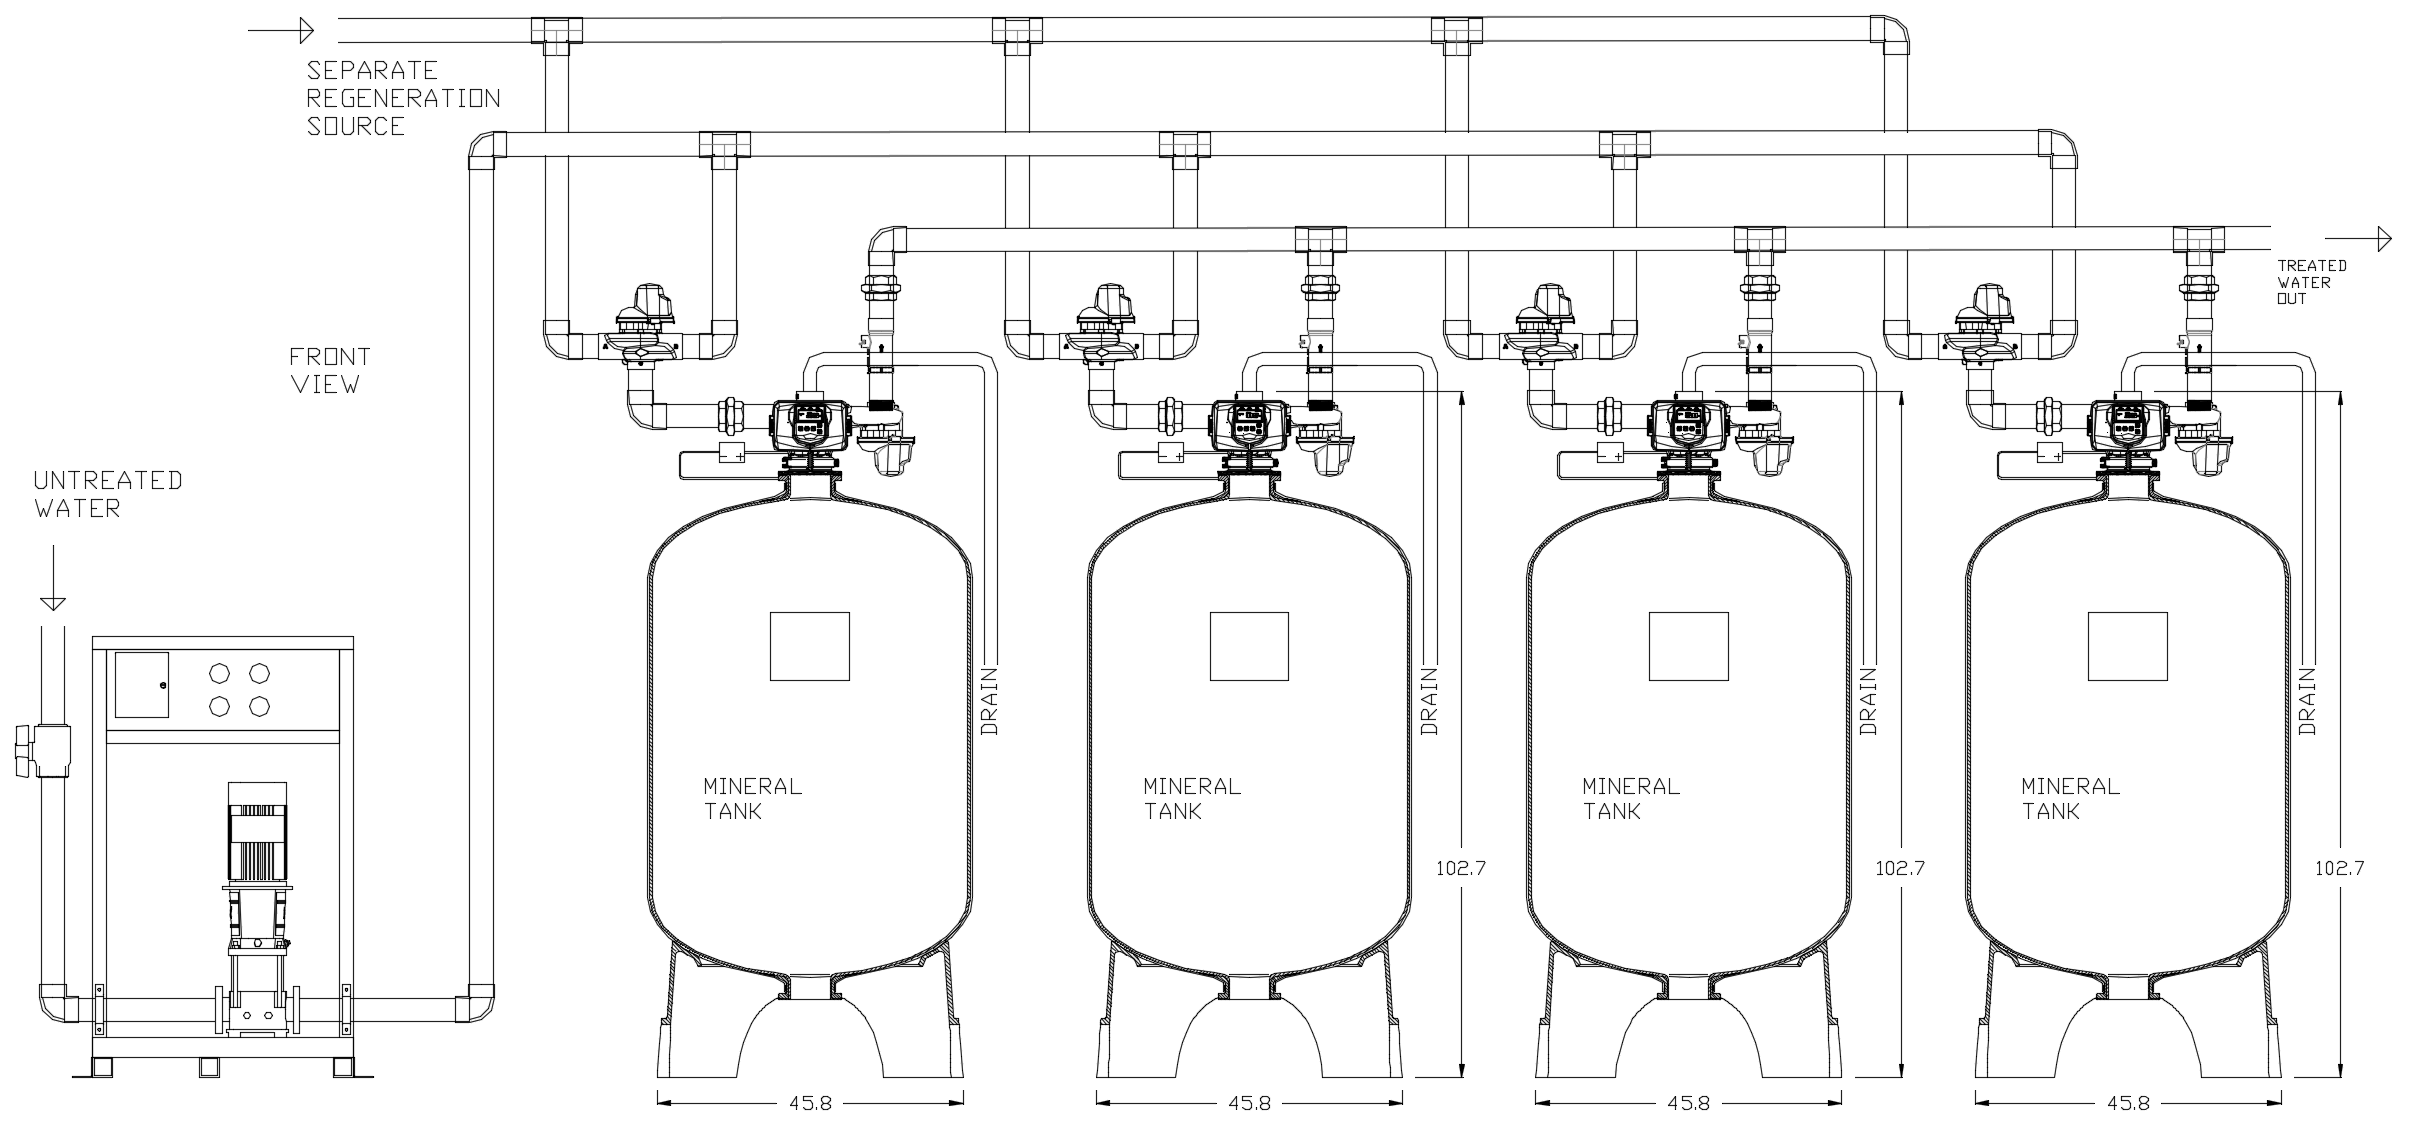 Controlled Regeneration Cooling Tower Side Stream 5-Micron Quadplex Filter System